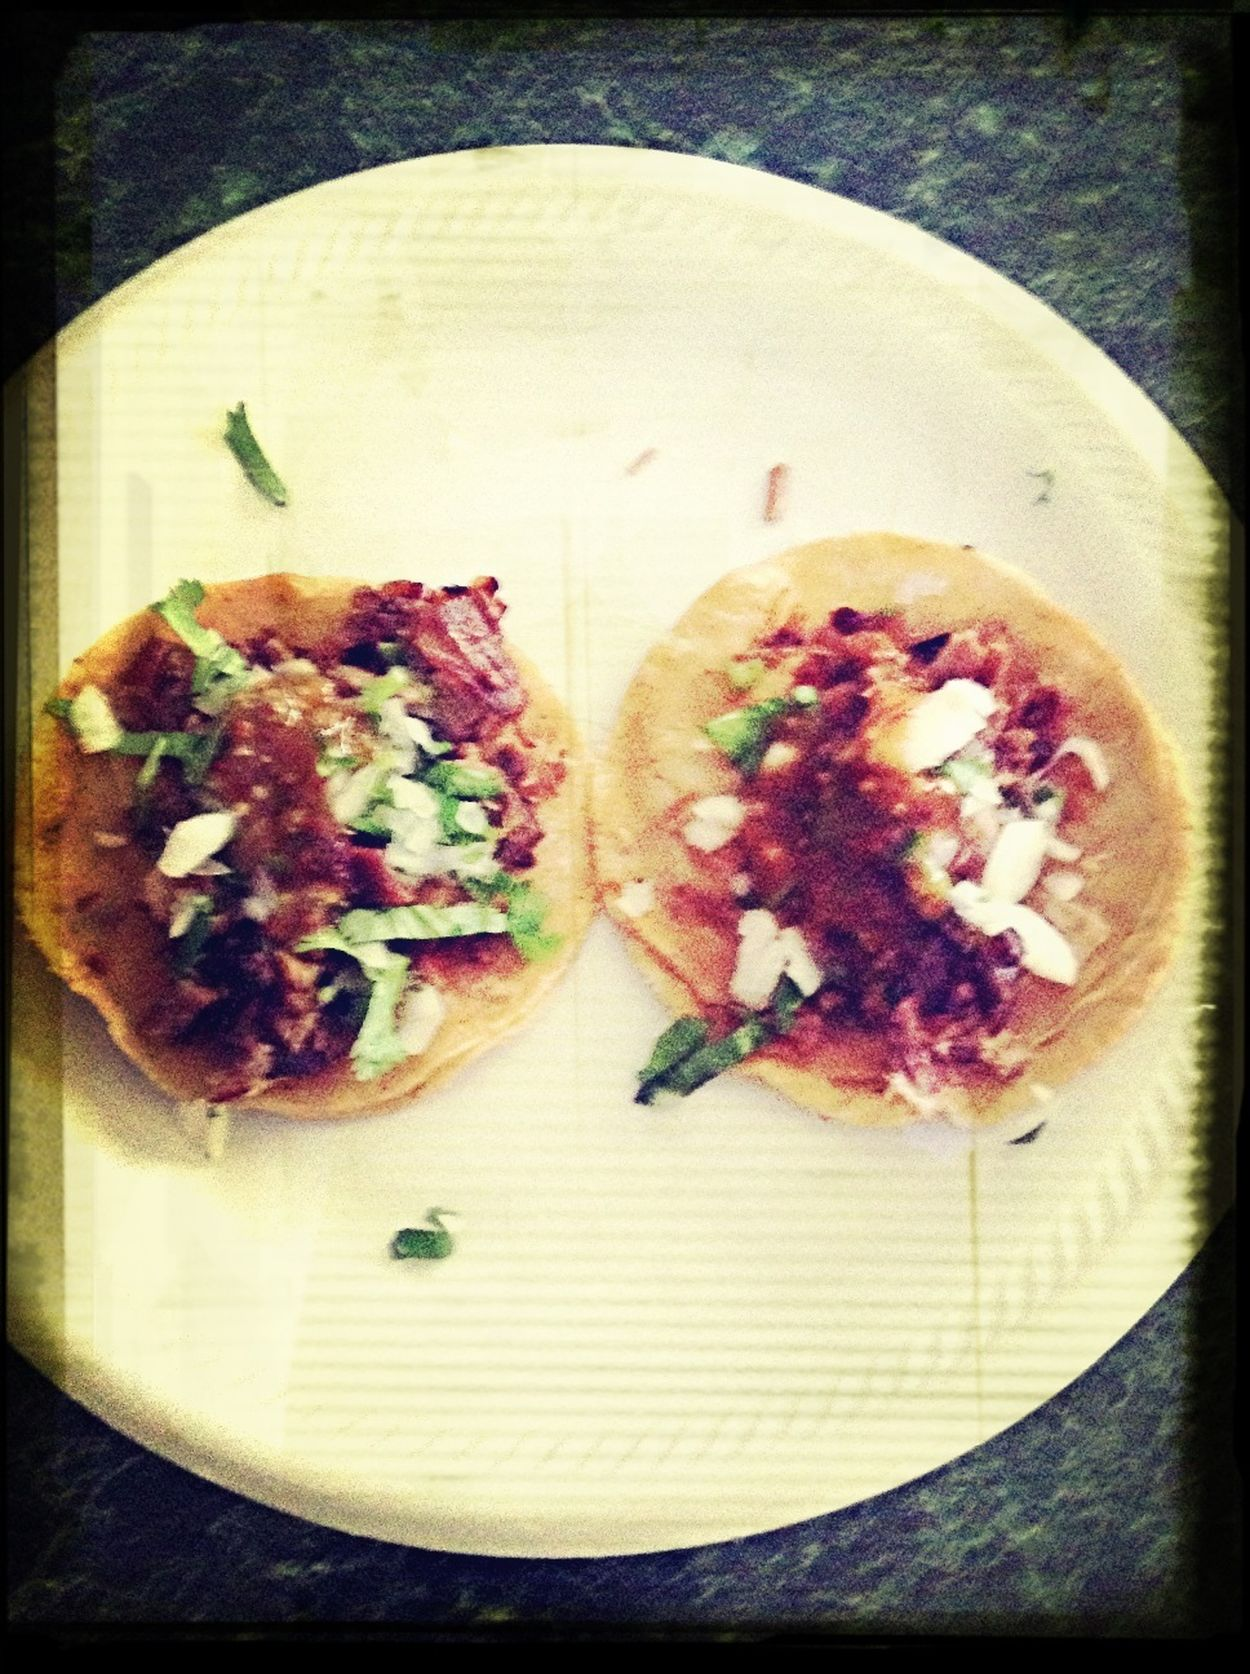 Straight from Guanajuato tacos ;) just arrived last night